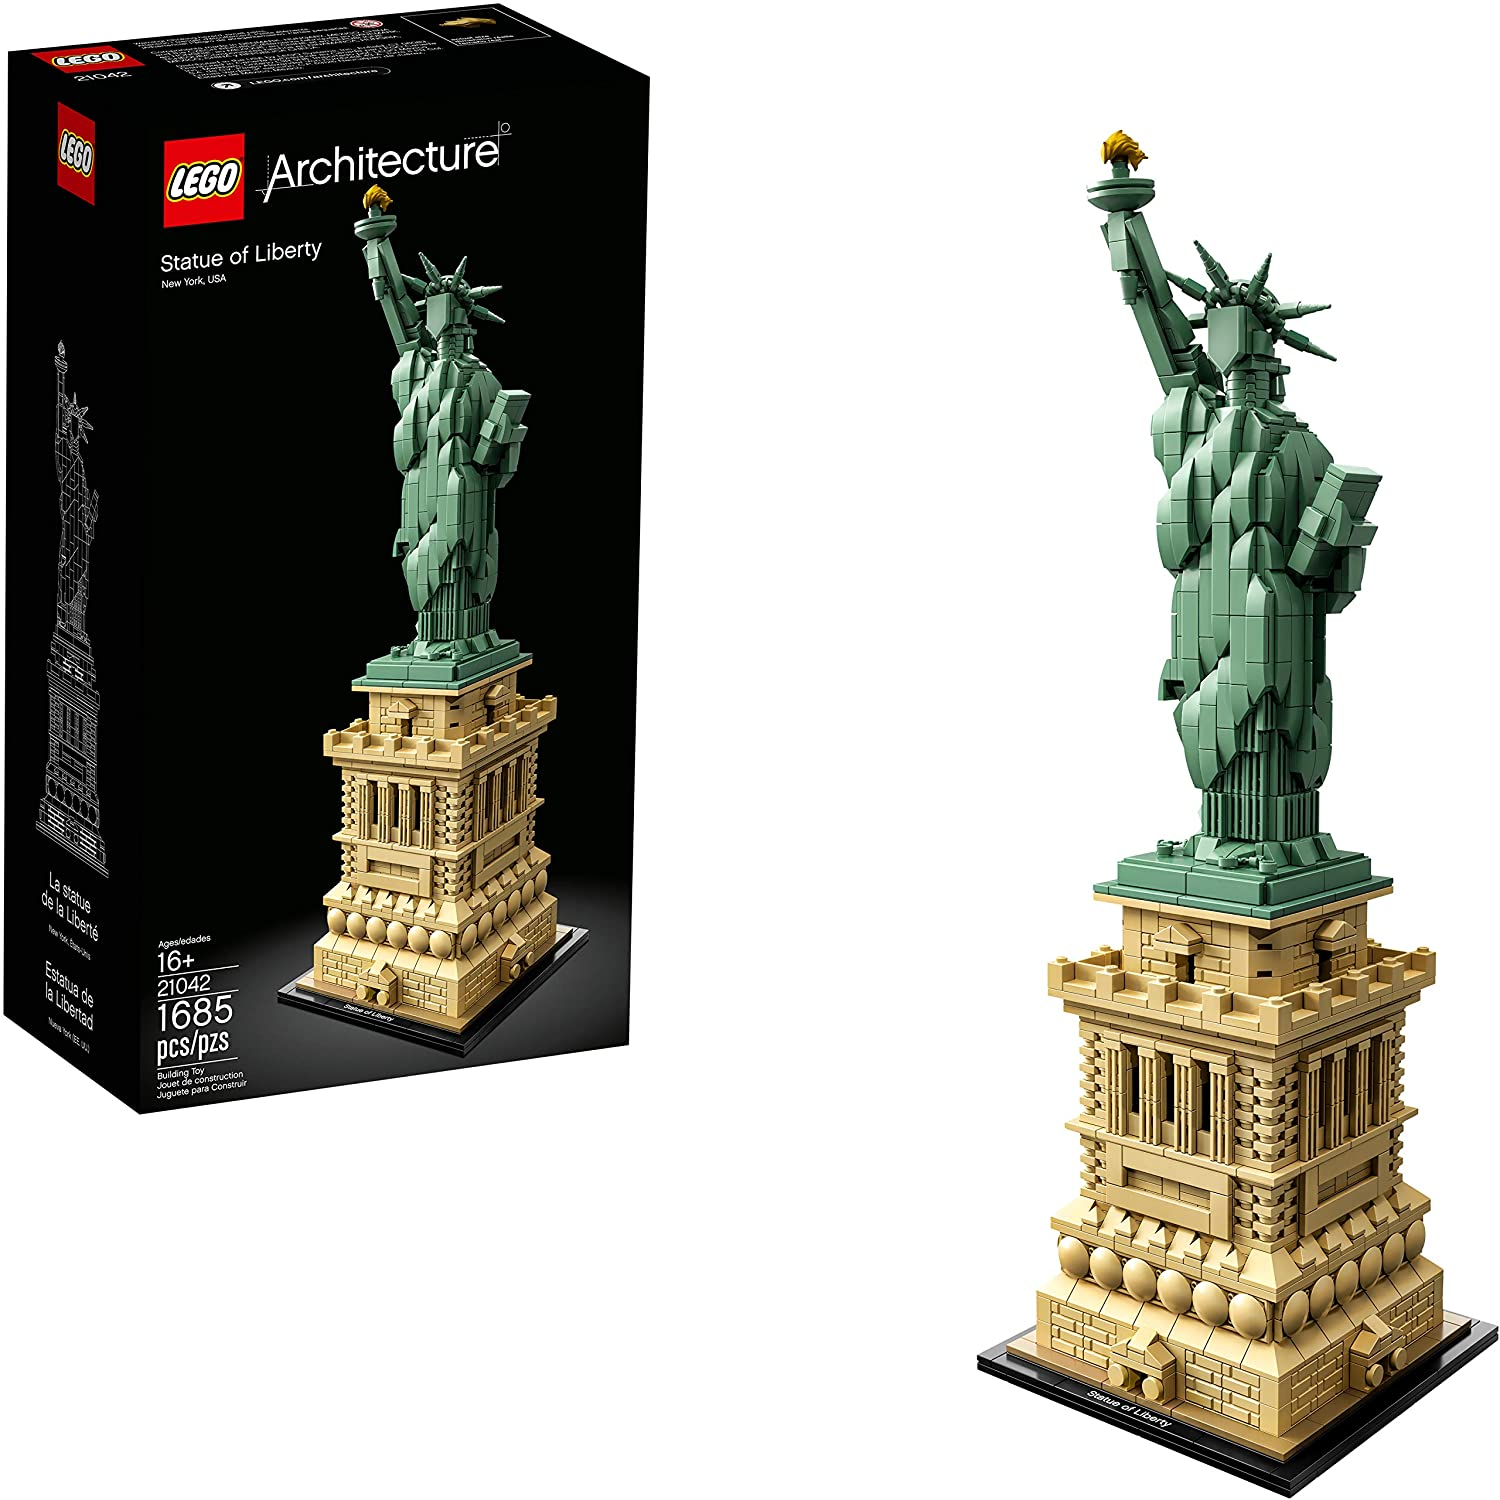 best legos for adults: LEGO Architecture Statue of Liberty Building Kit